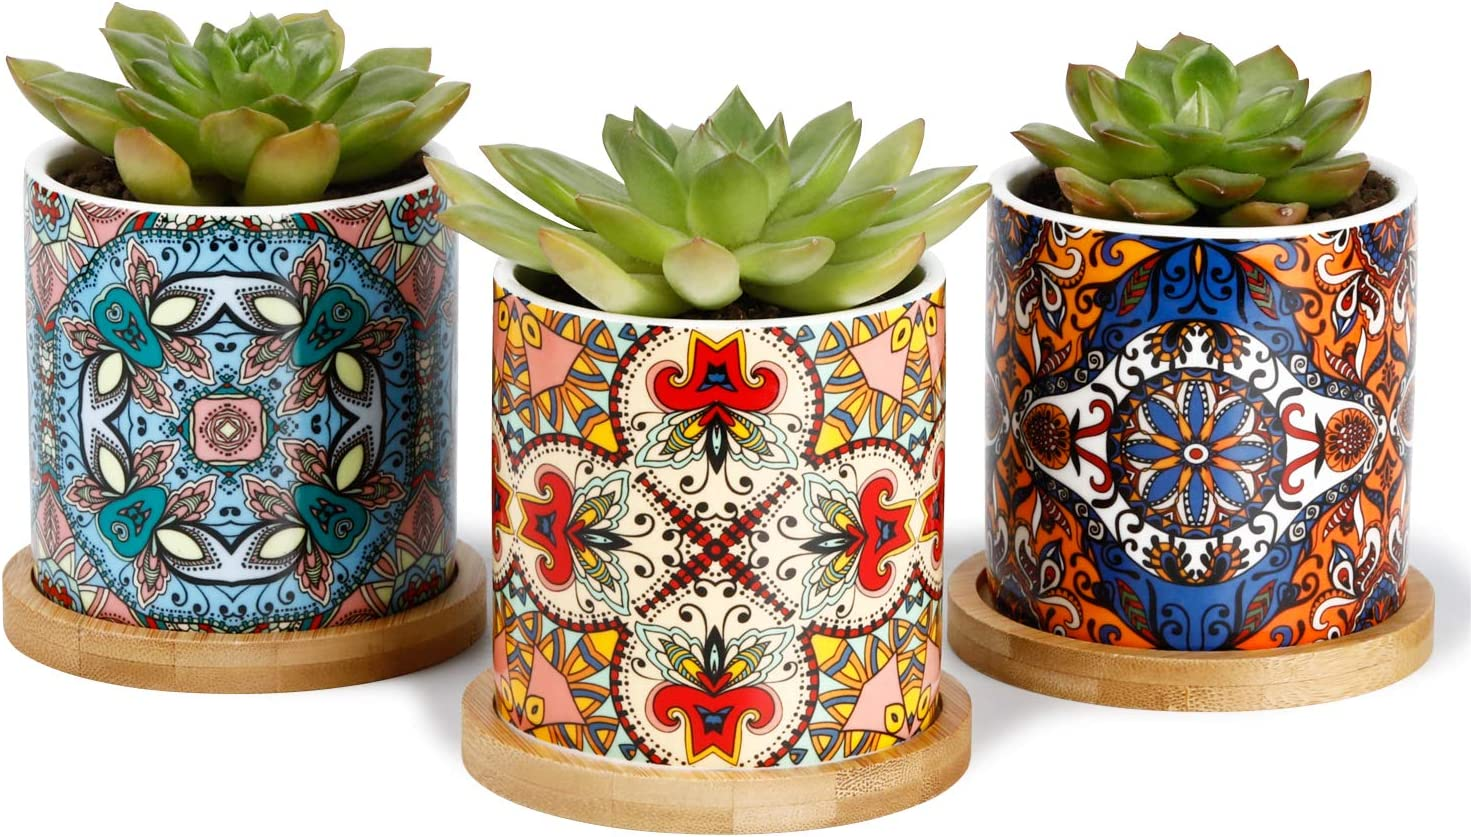 Greenaholics Succulent Pots - 3 Inch Ceramic Plant Pots with Bamboo Trays, Great House and Office Decor, Set of 3, Multi-Color